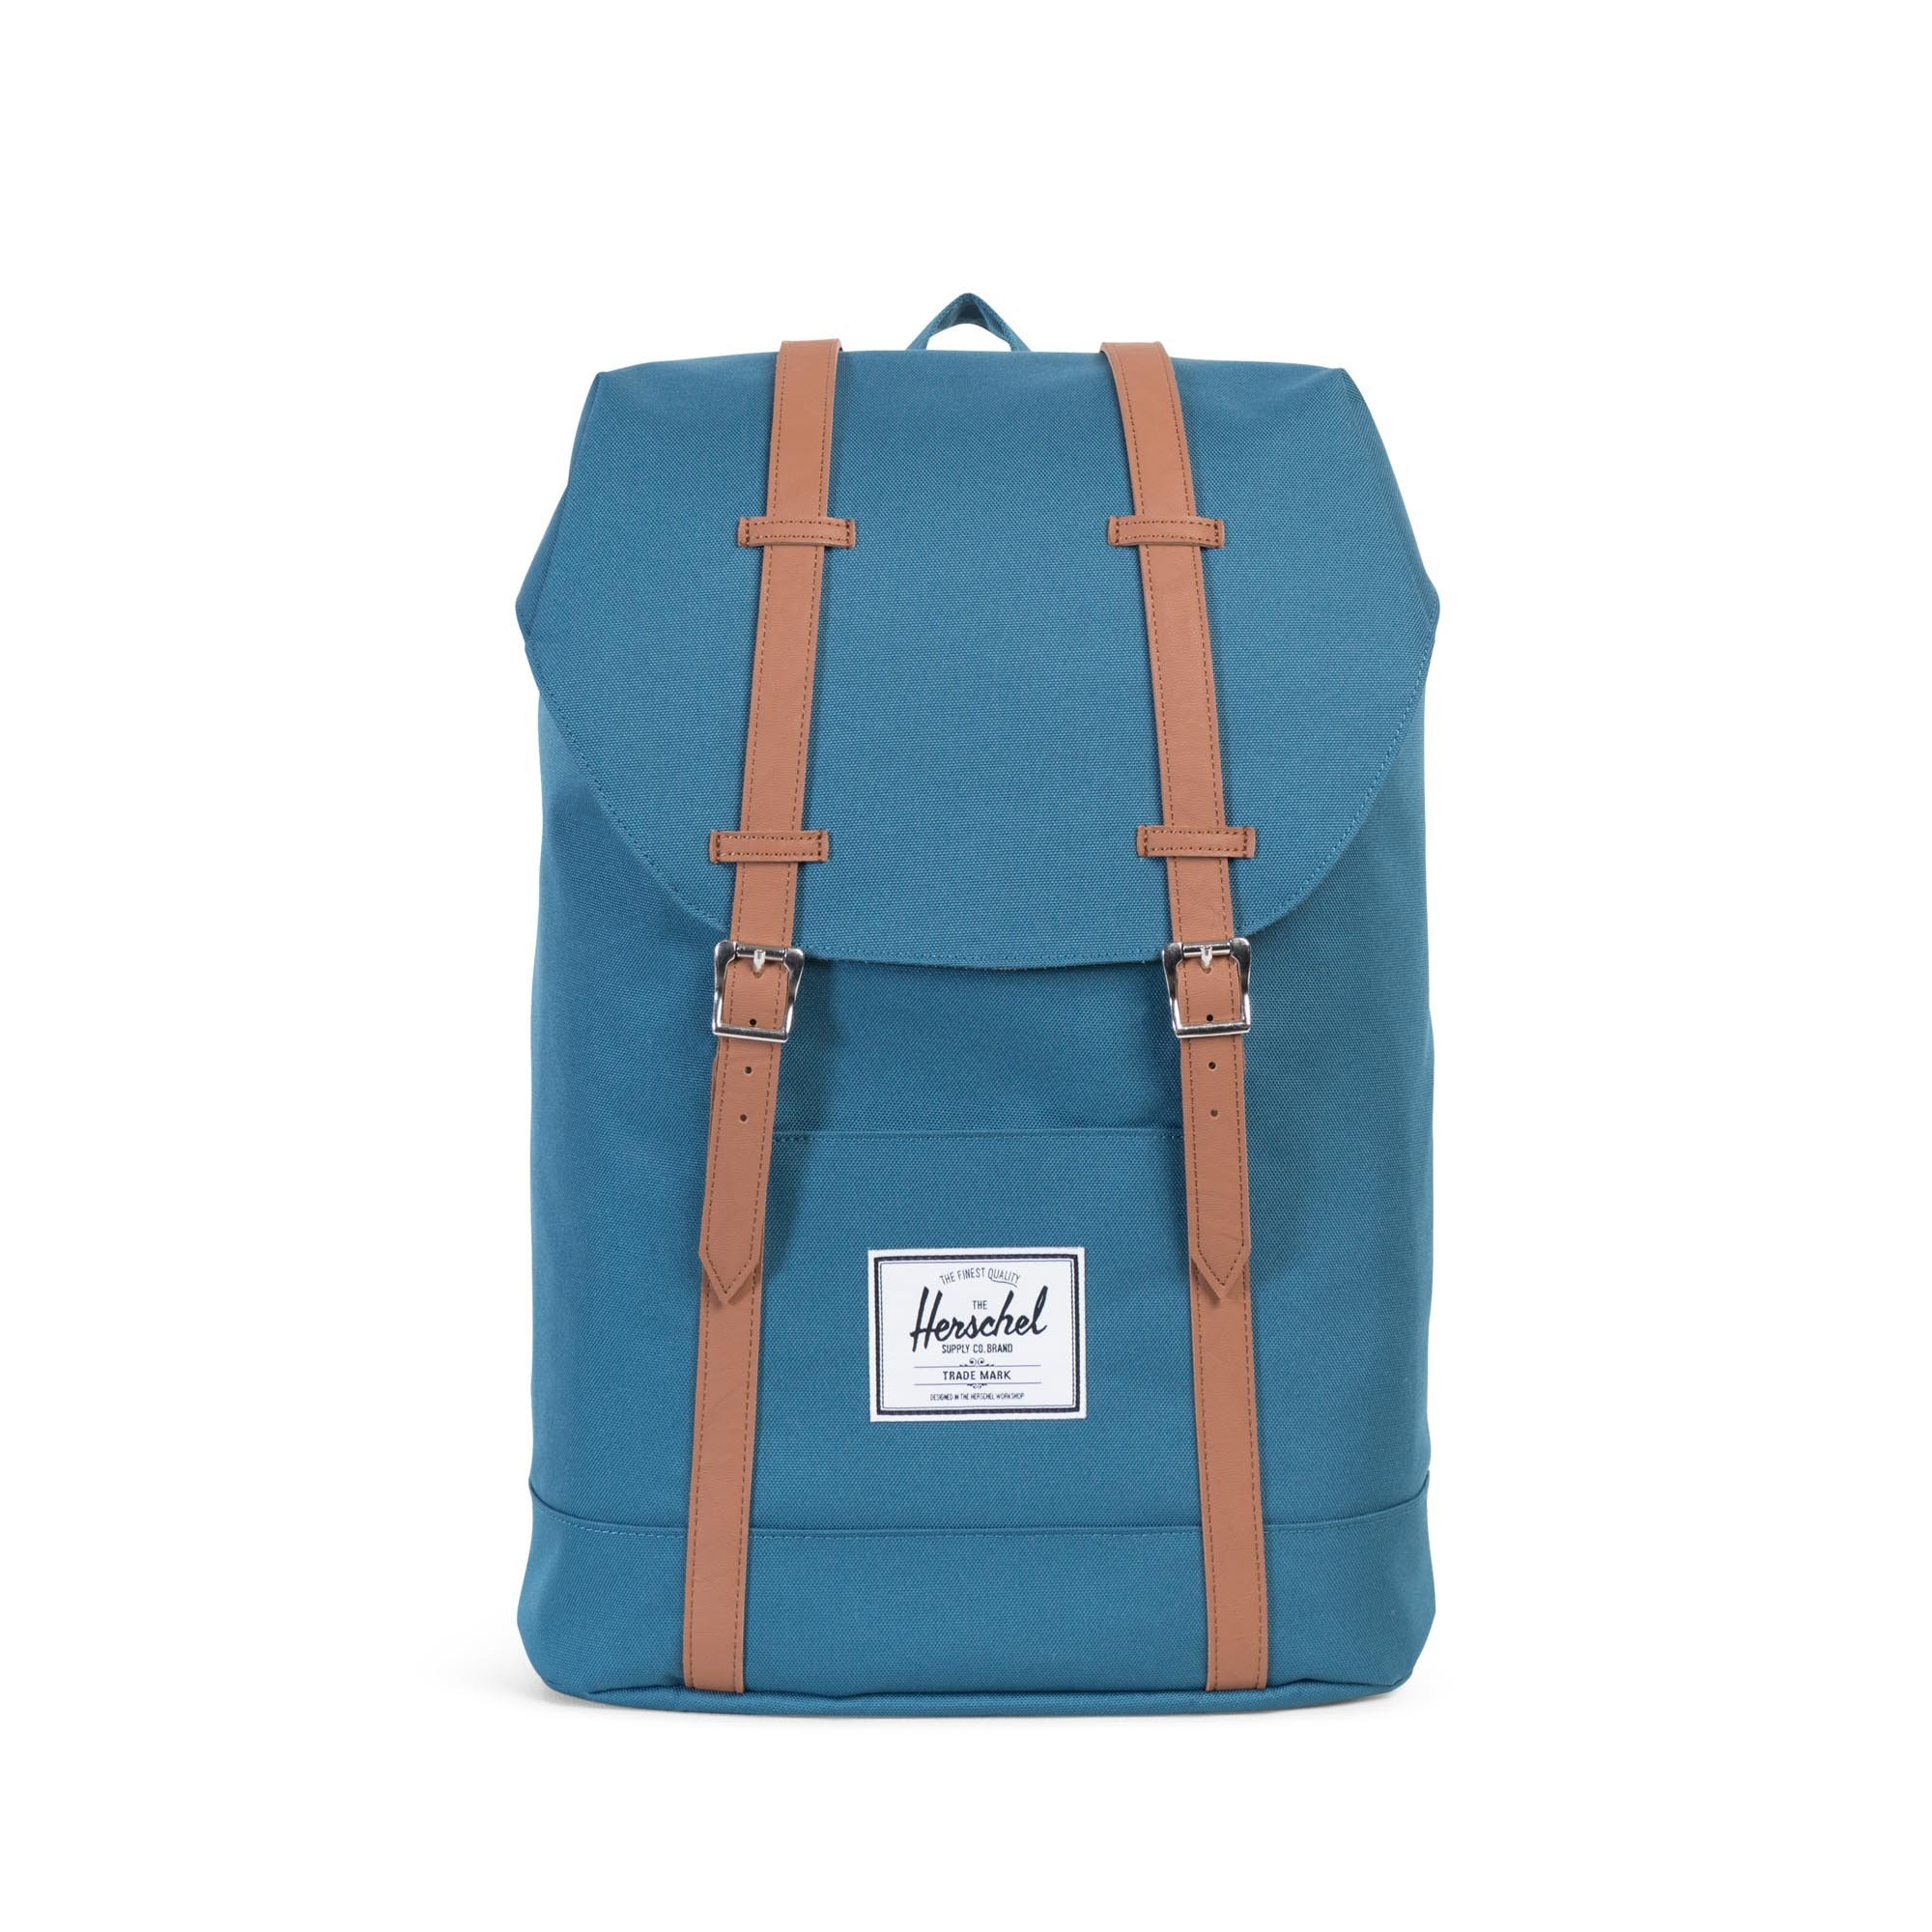 Herschel Retreat Backpack Indian Teal/Tan Synthetic Leather